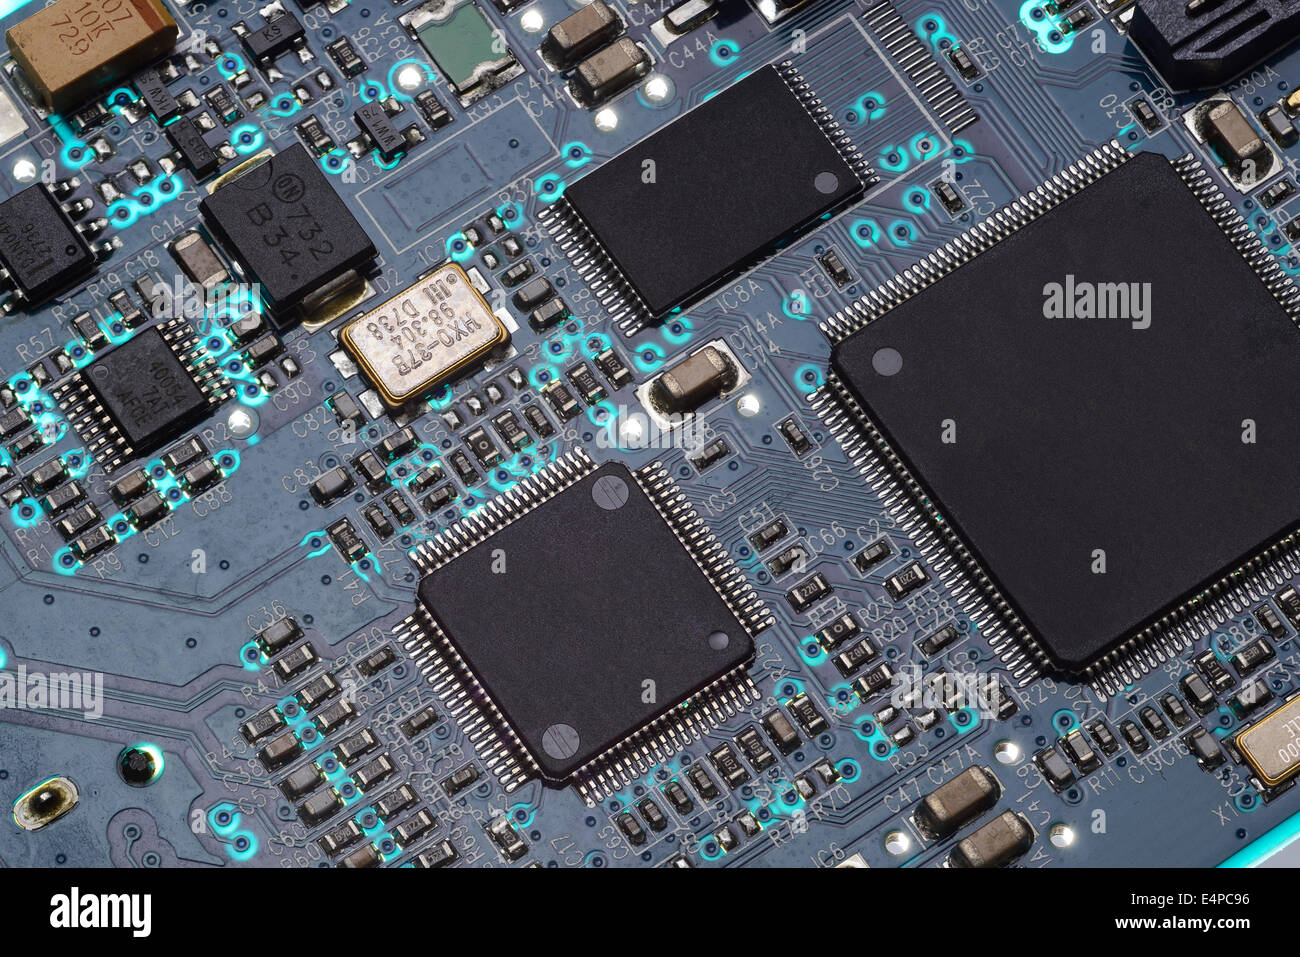 Close up detail of a computer circuit board - Stock Image